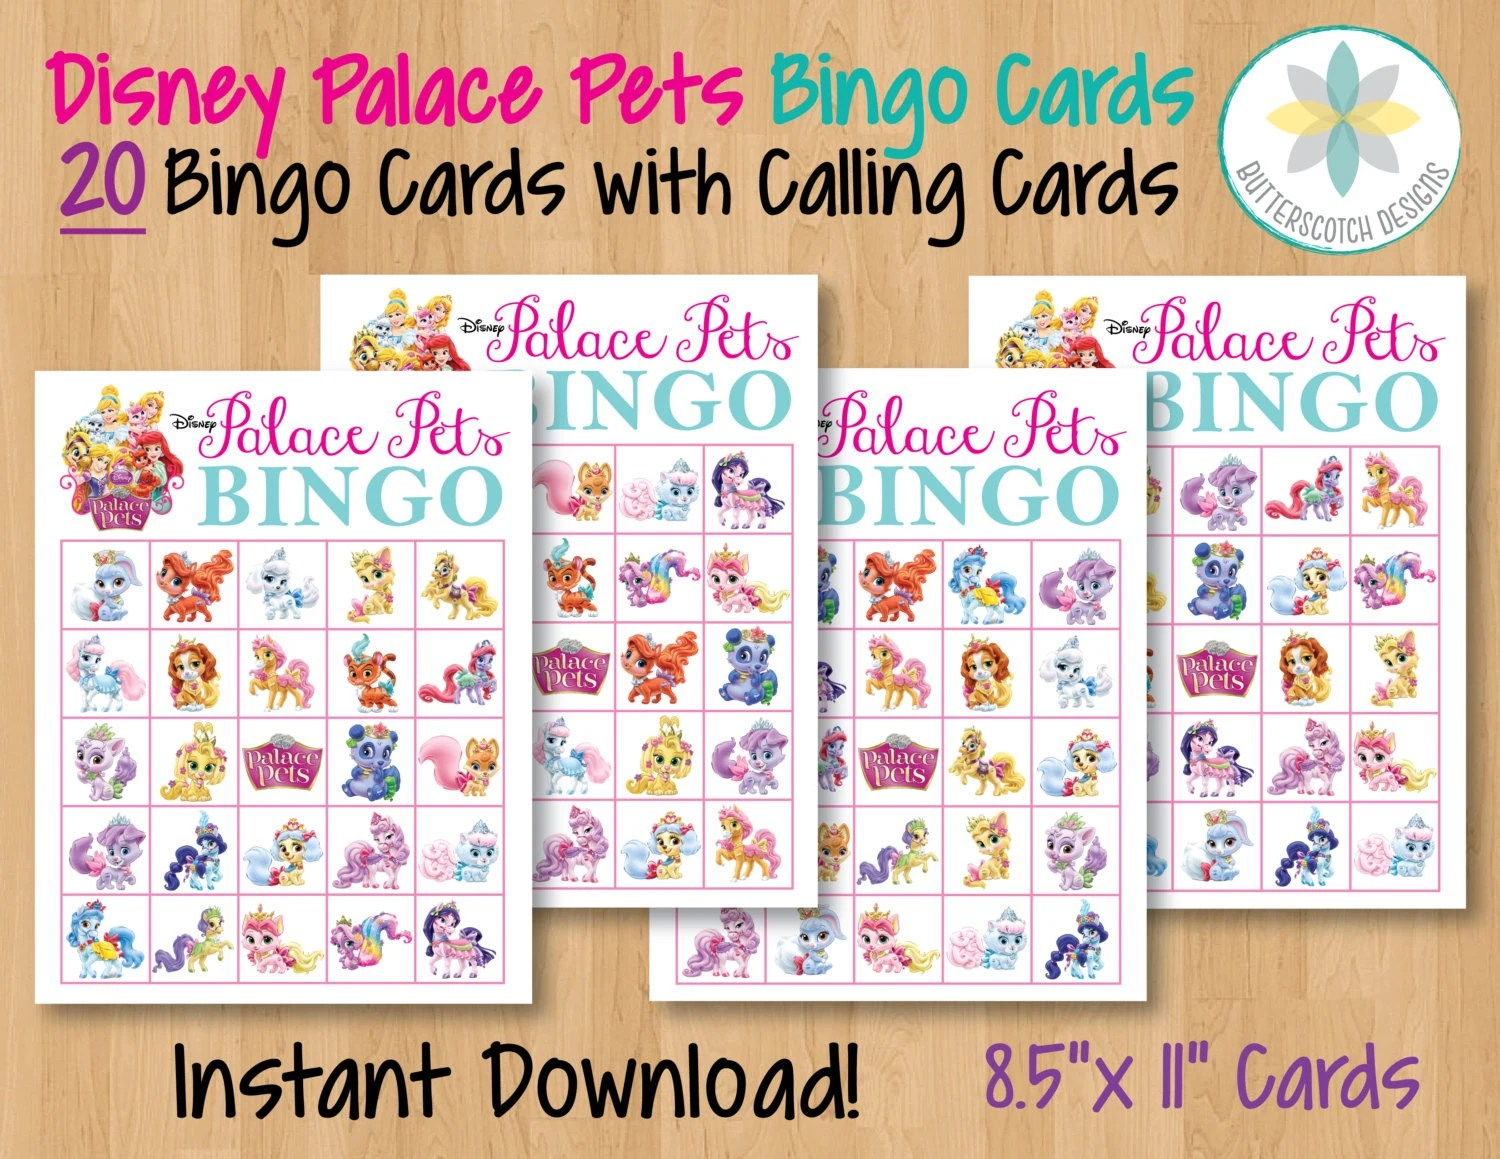 Princess Palace Pets Printable Bingo Cards 20 Different